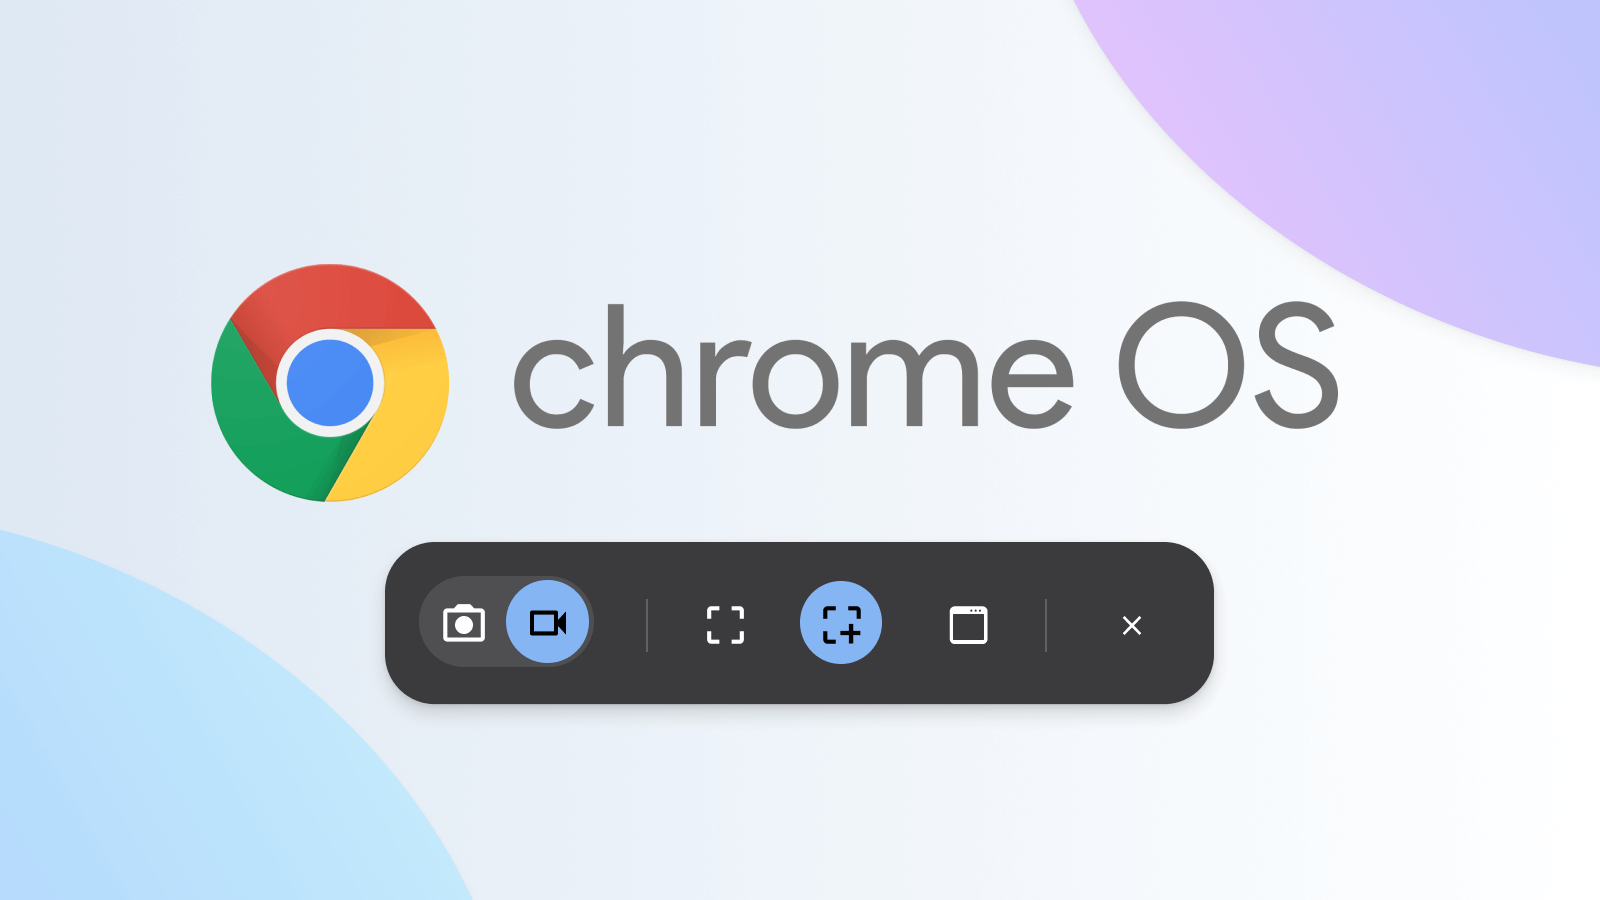 Google is adding a native screen recorder to Chrome OS